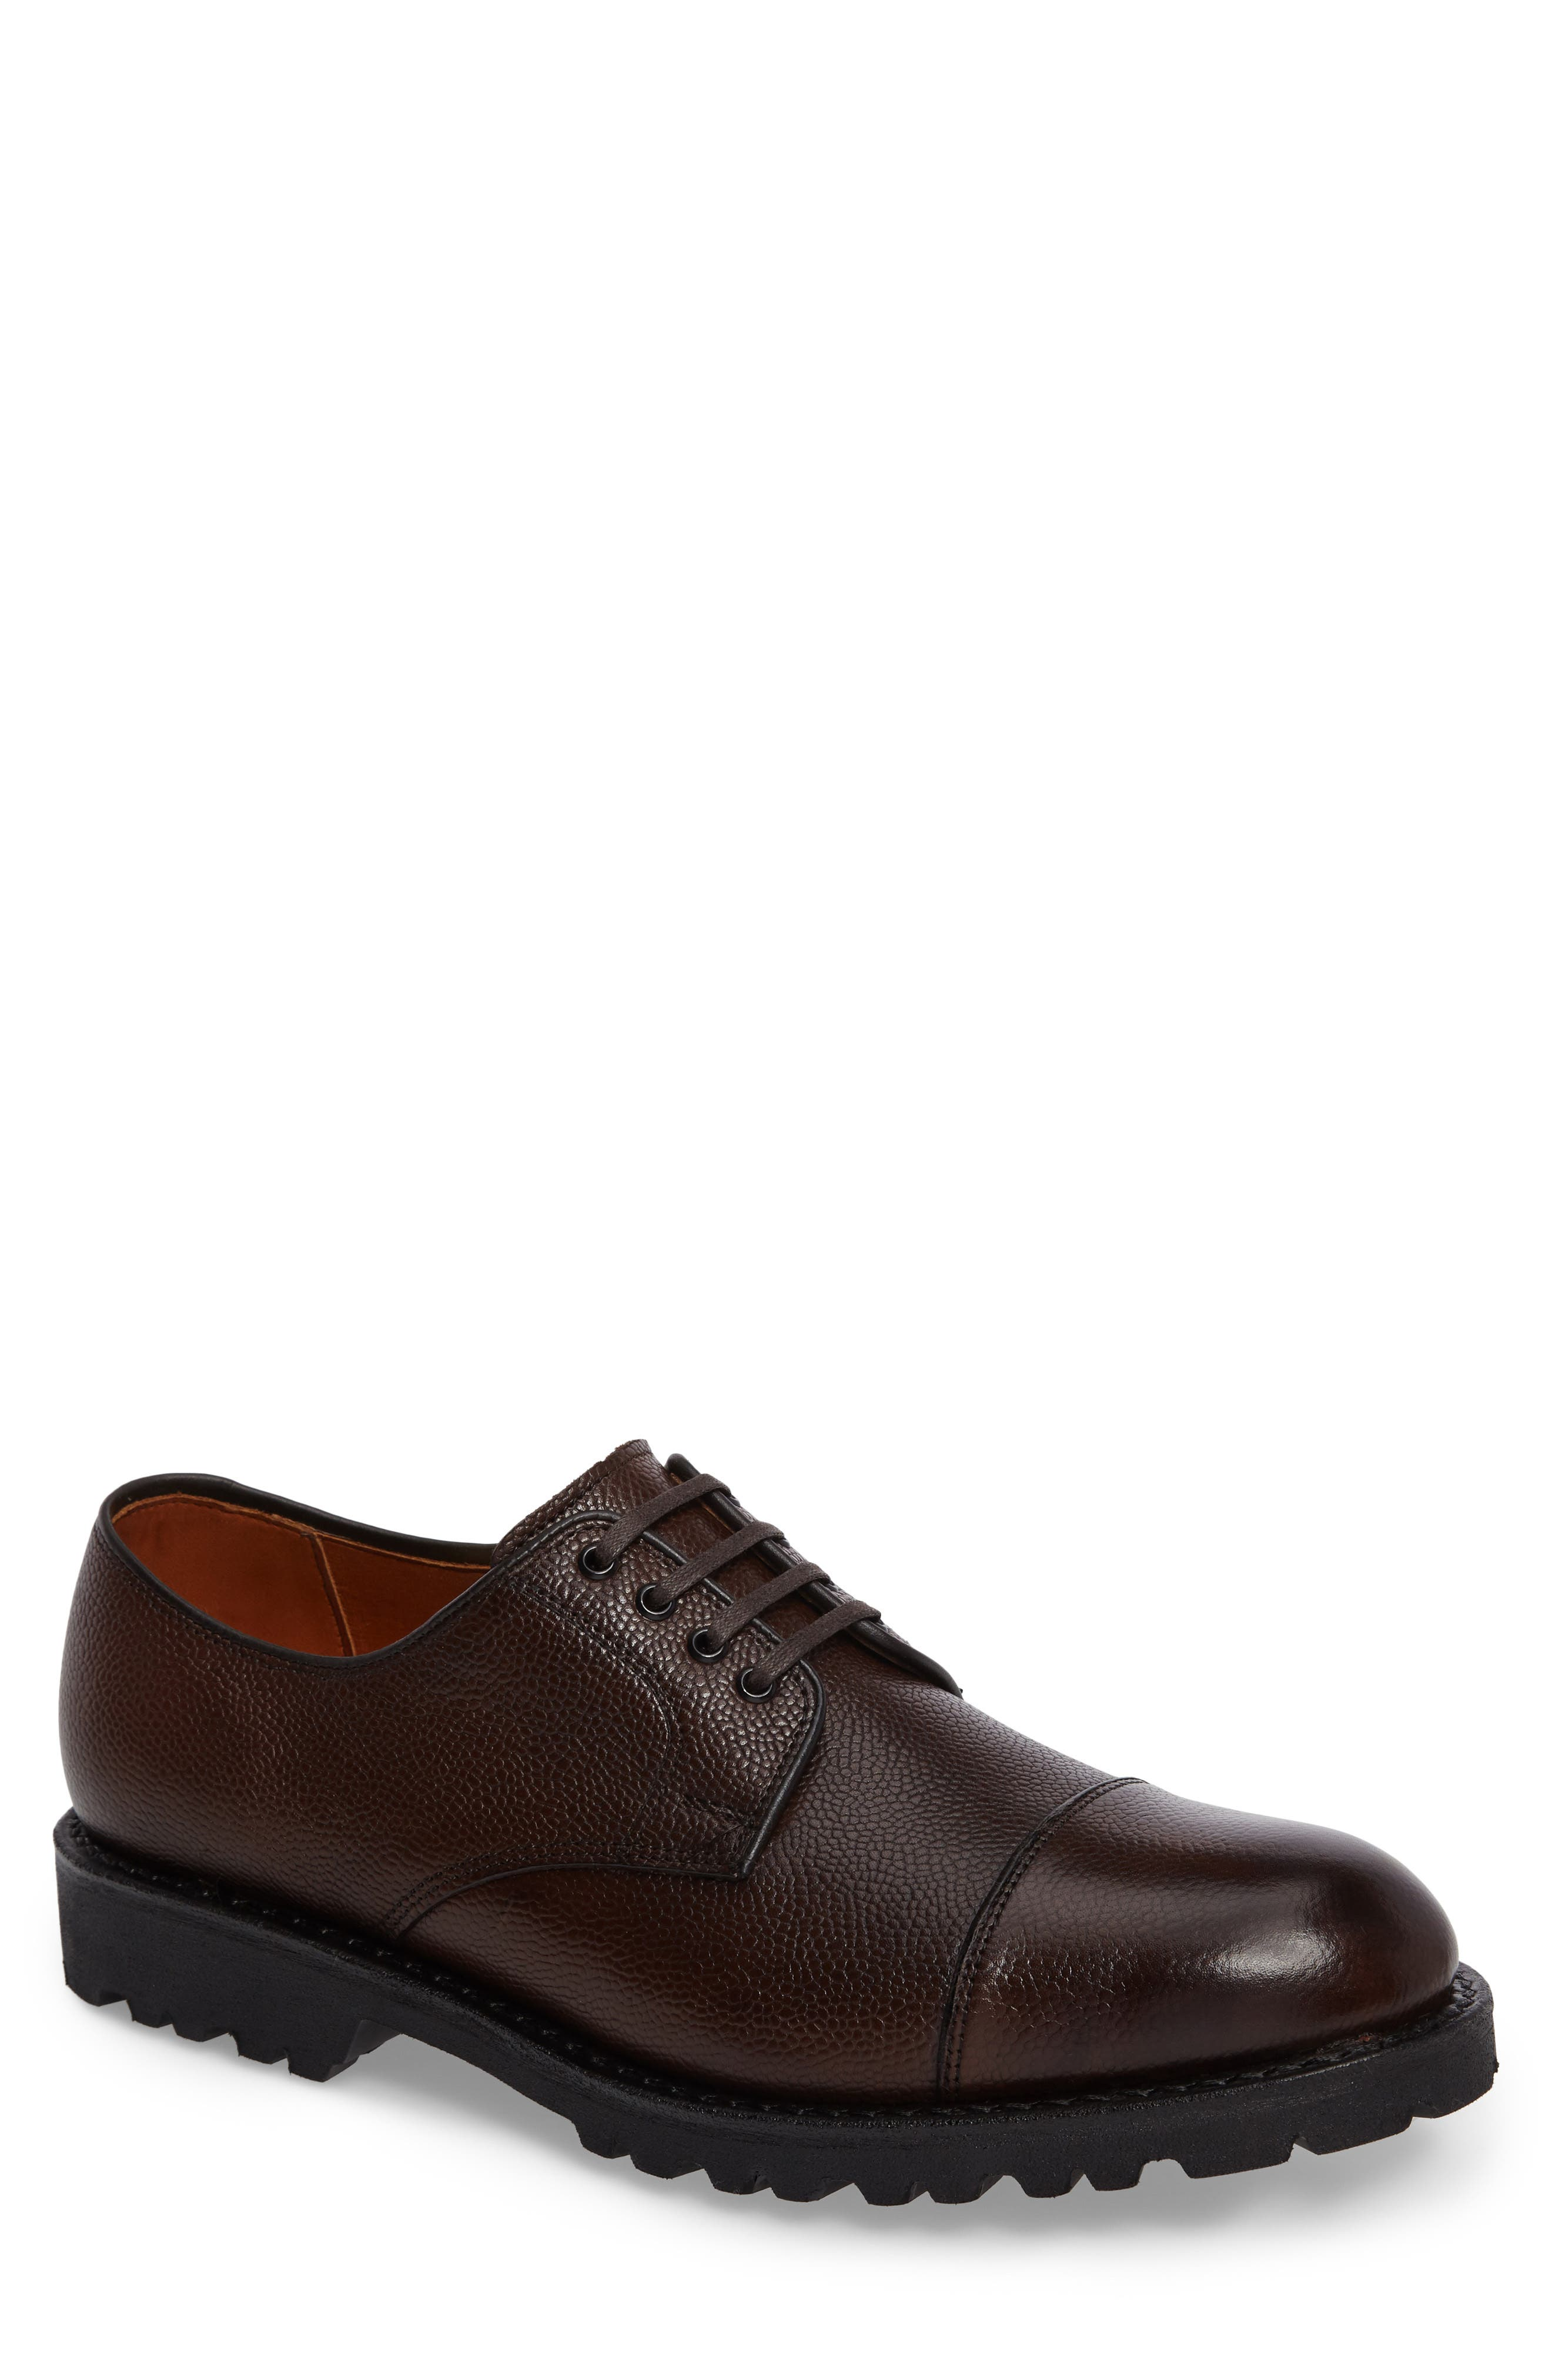 Allen Edmonds Tate Cap Toe Derby (Men)